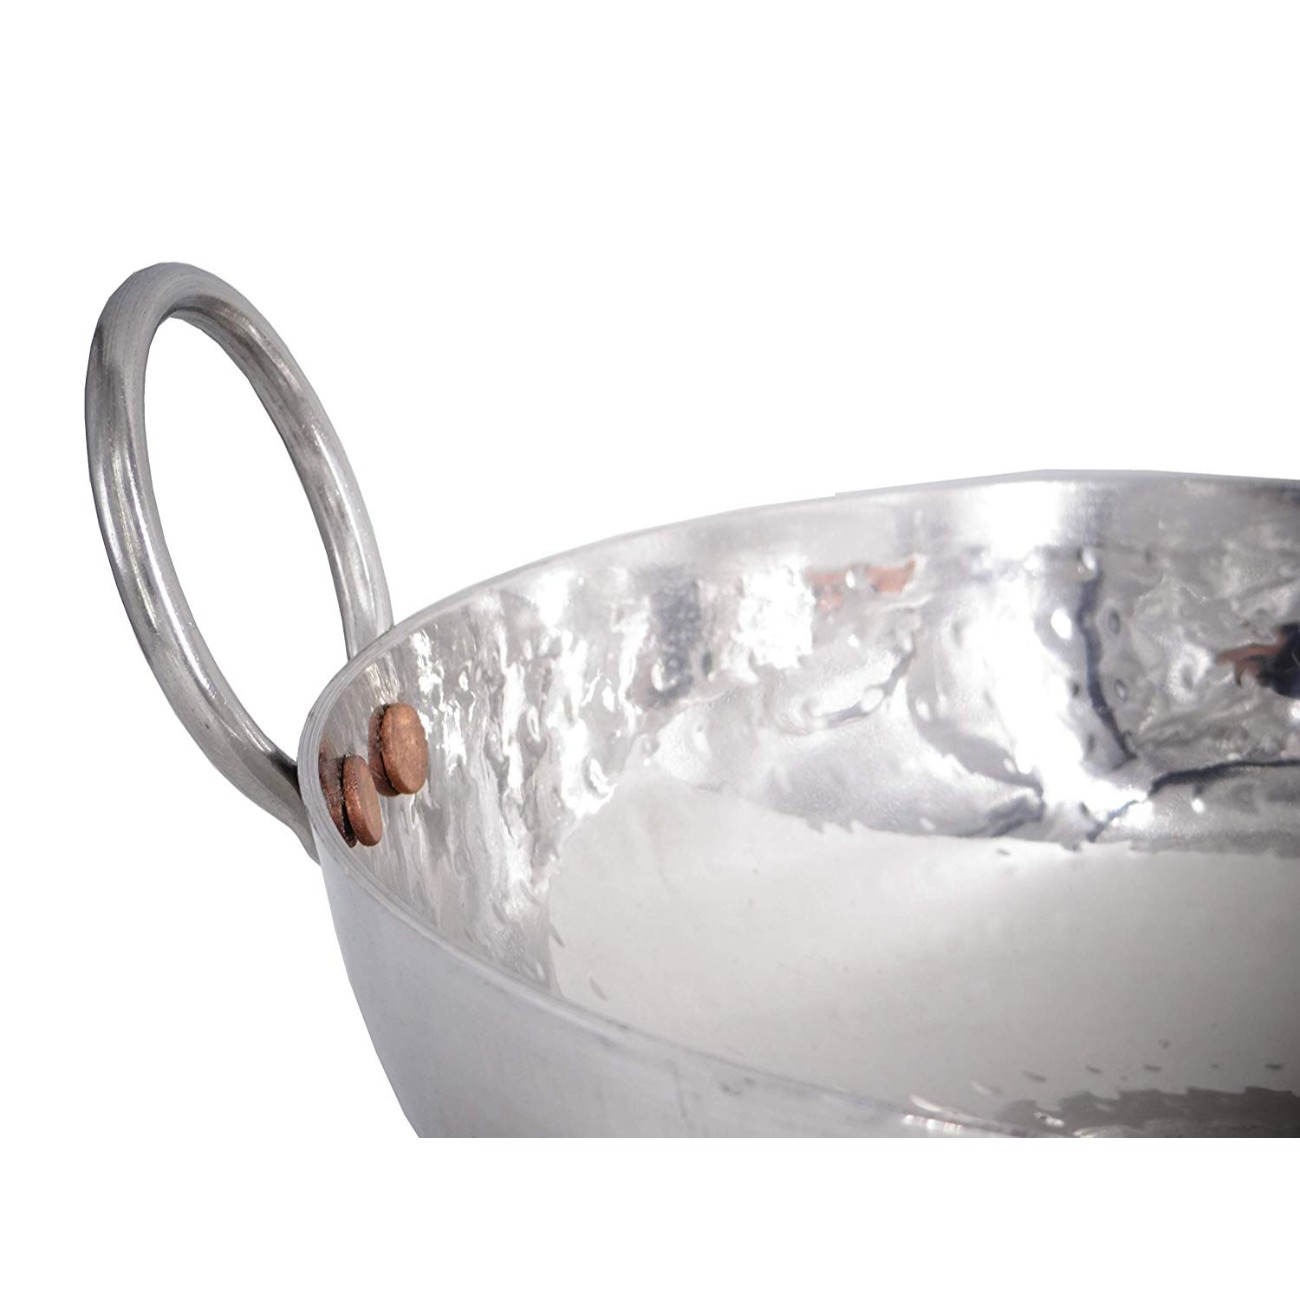 Stainless Steel Hammered Kadai Serving Kadhai Wok For Kitchen Cookware Tableware